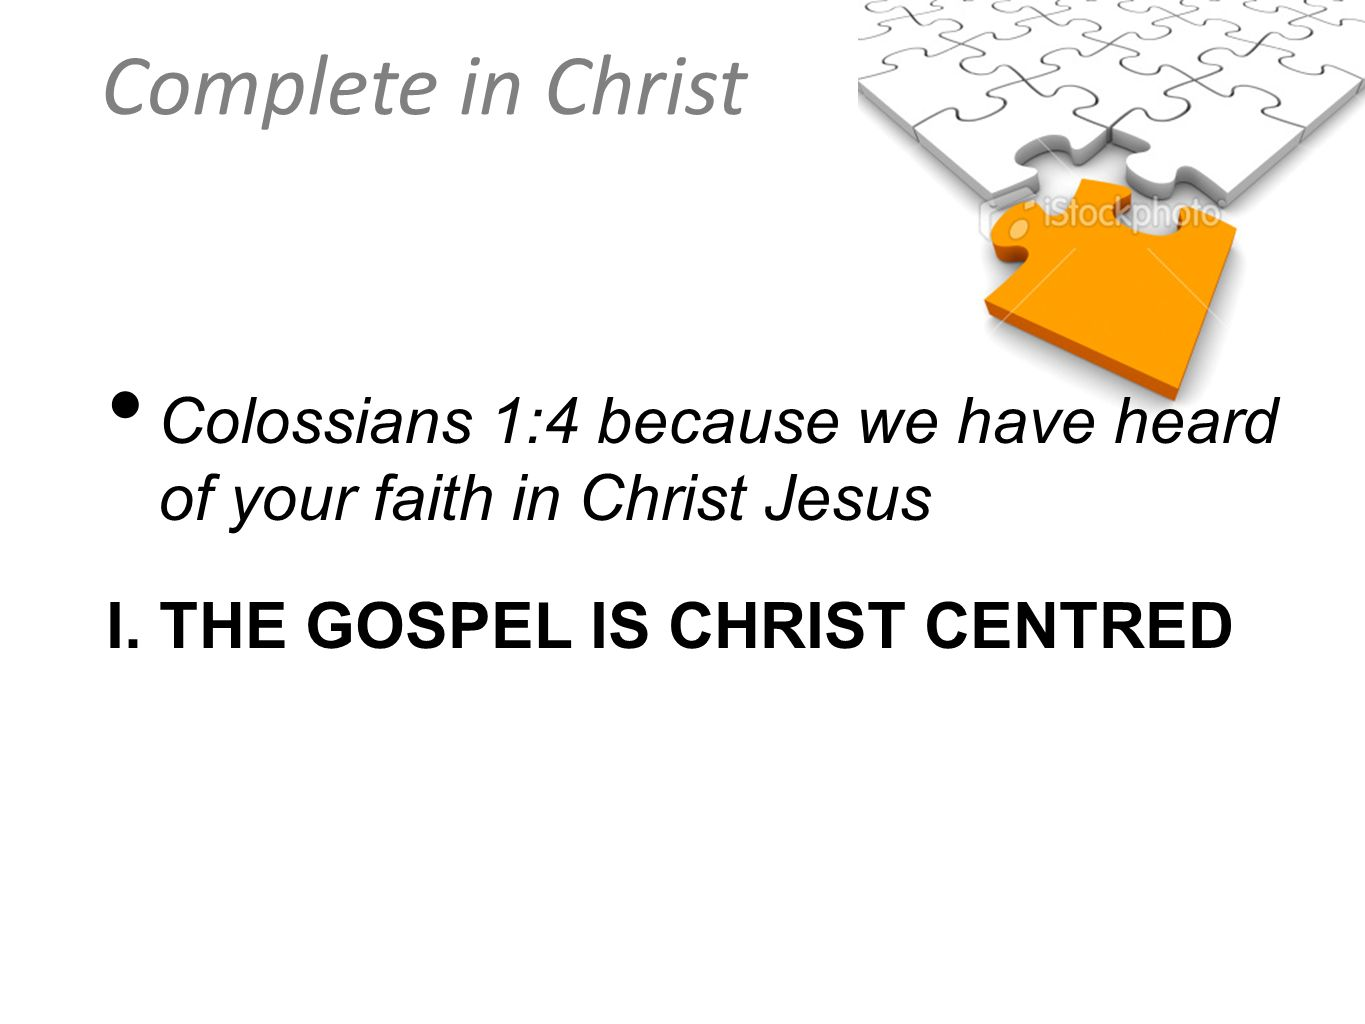 Colossians 1:4 because we have heard of your faith in Christ Jesus